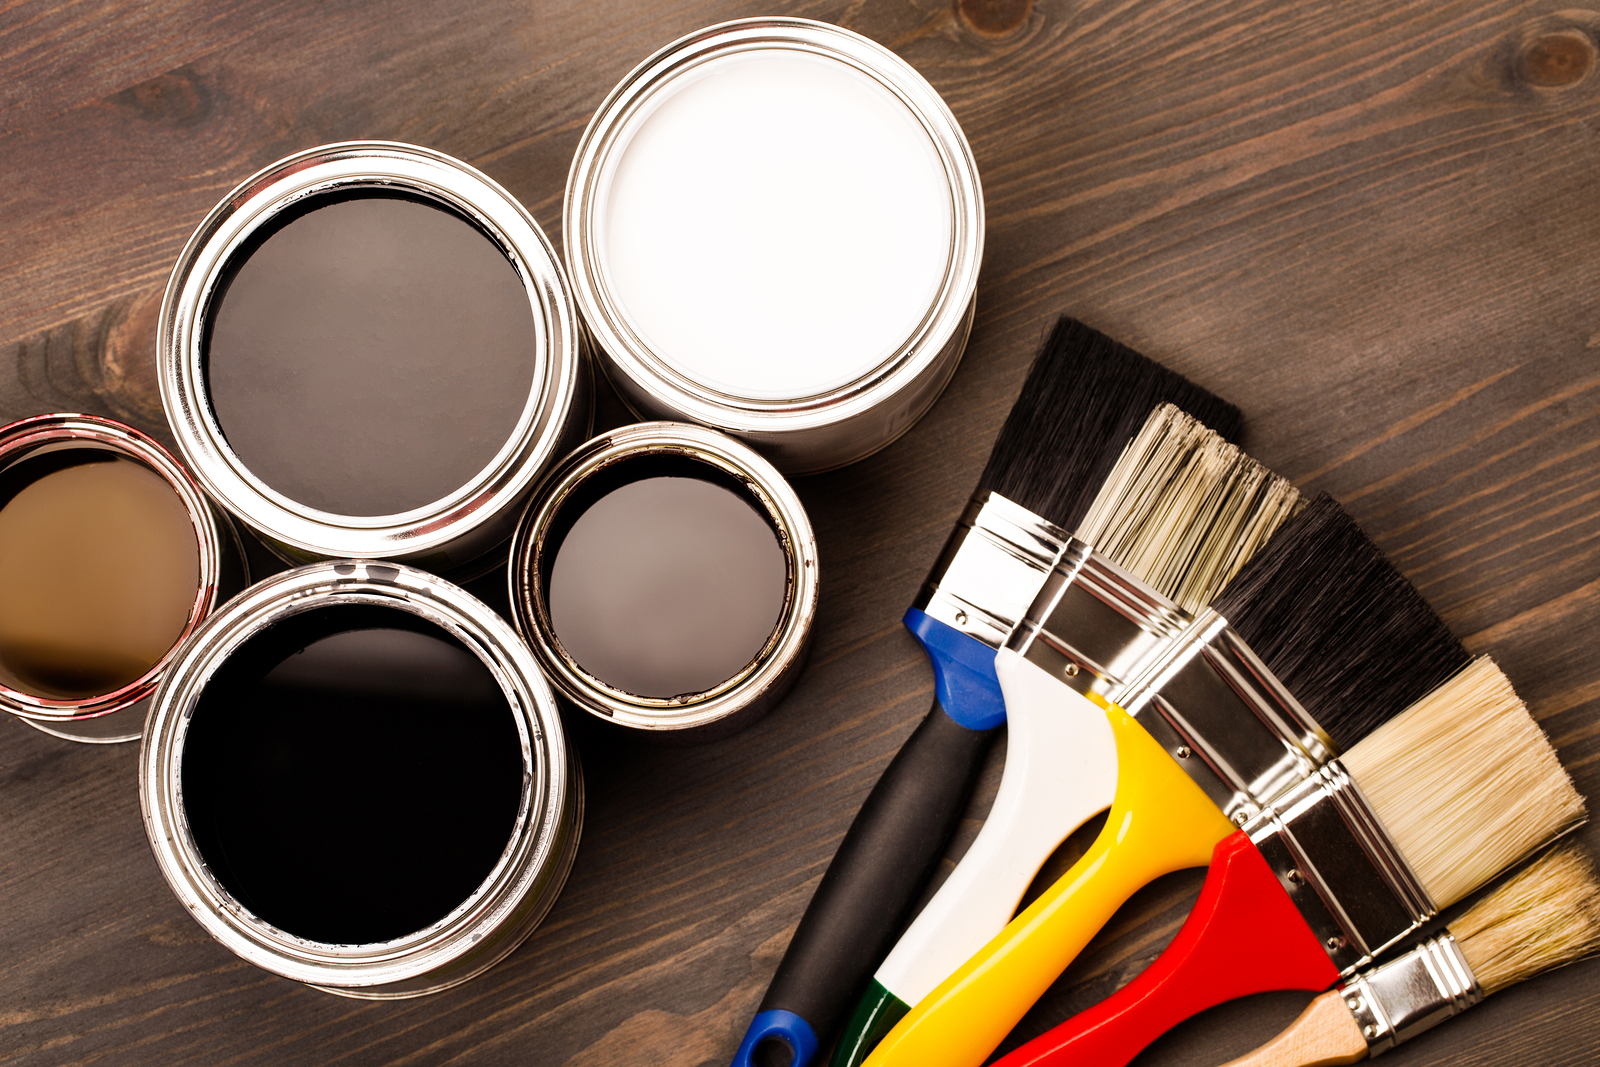 refinishing versus resurfacing hardwood floors